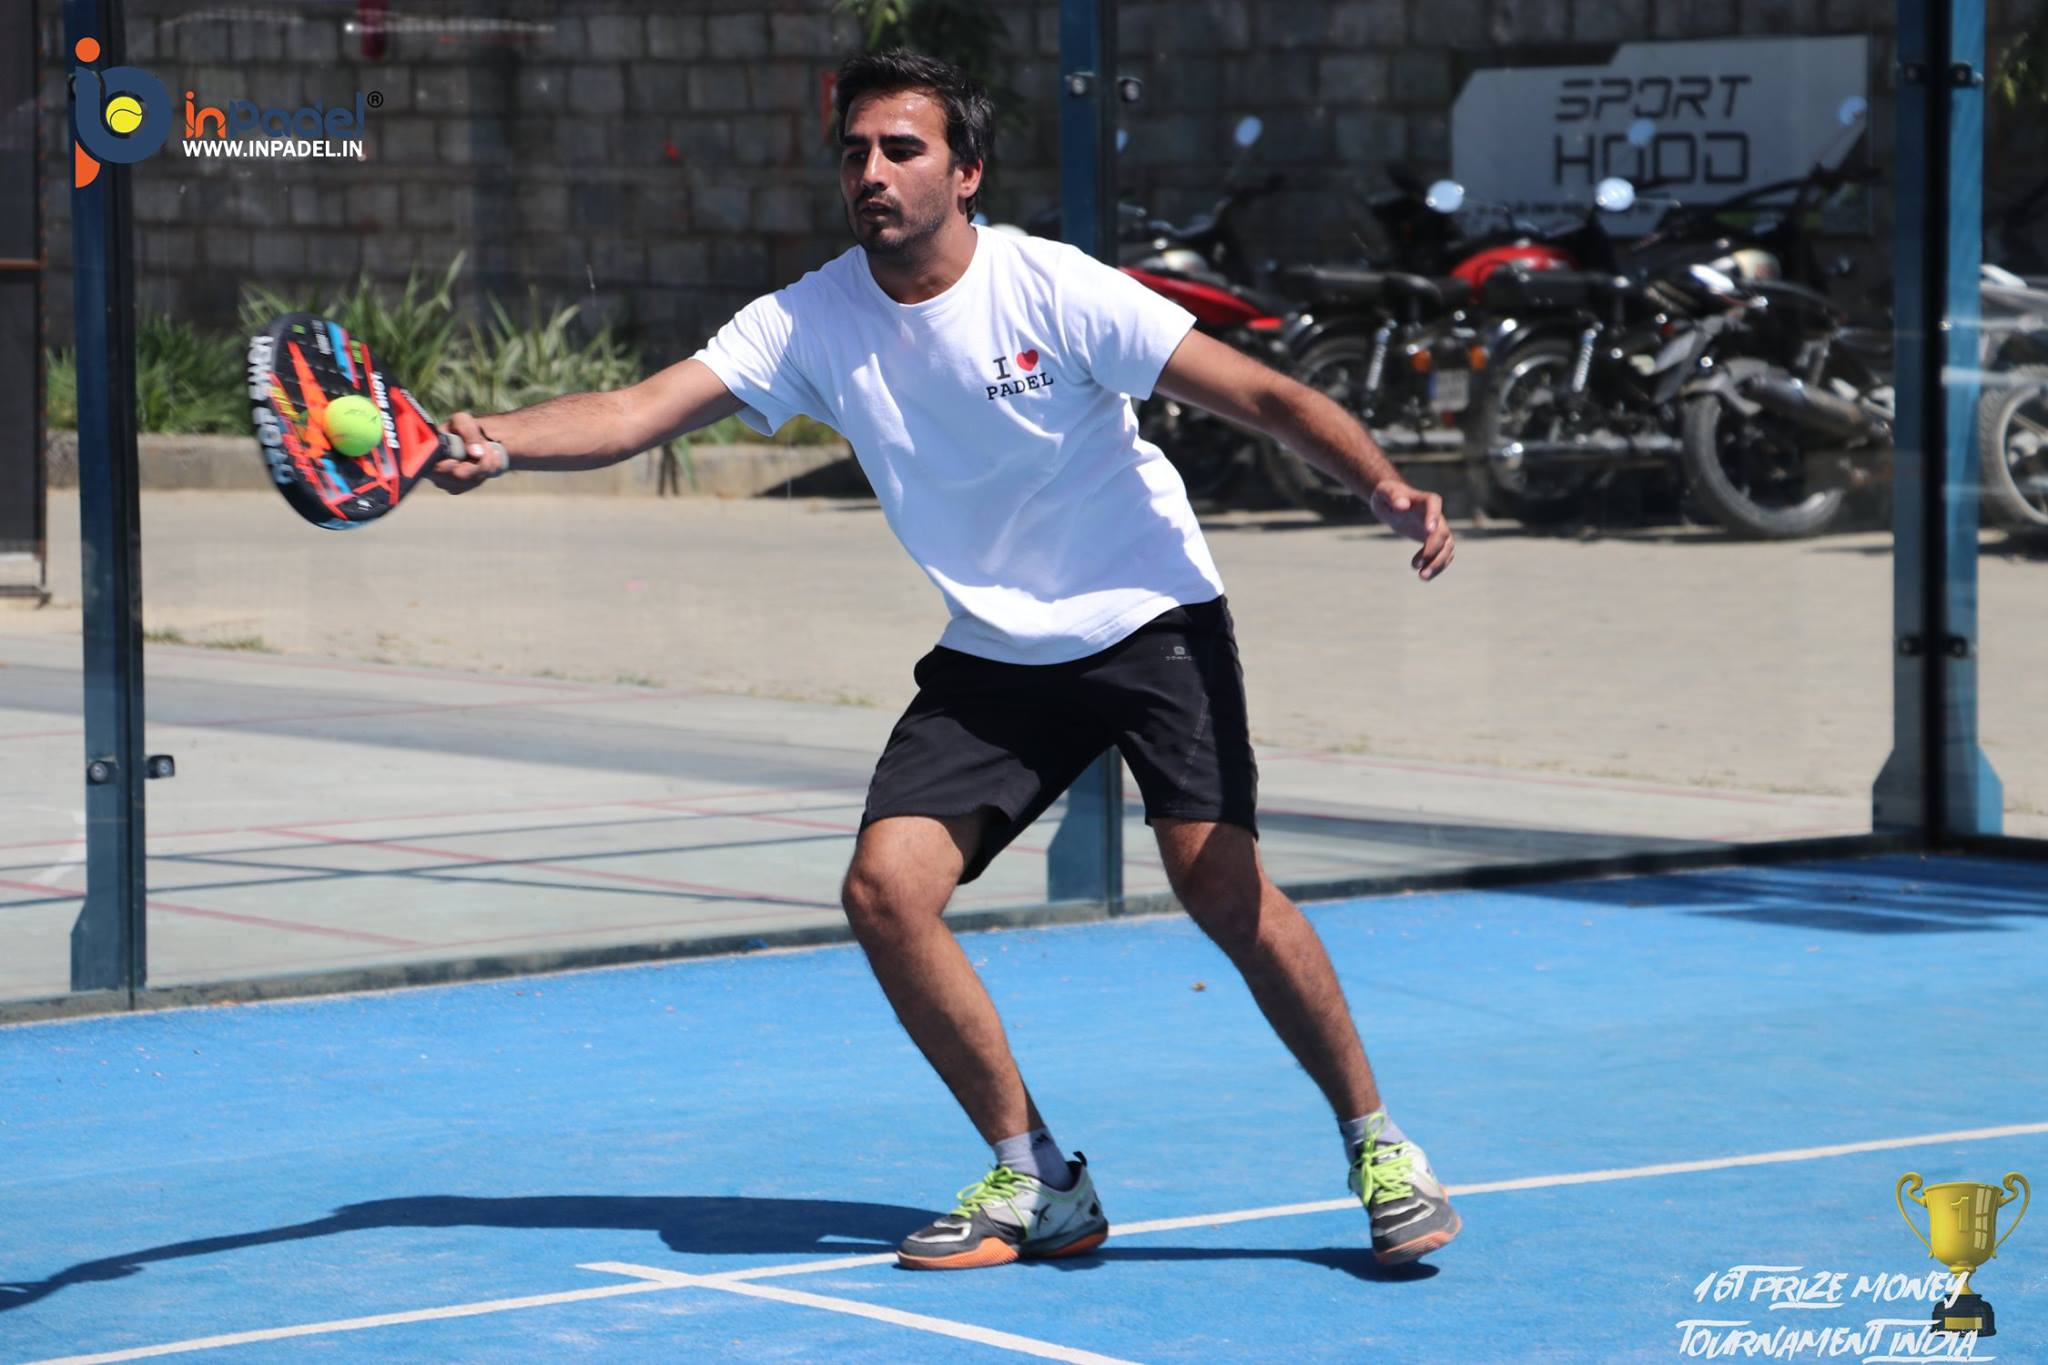 InPadel Prize Money Tournament (46)